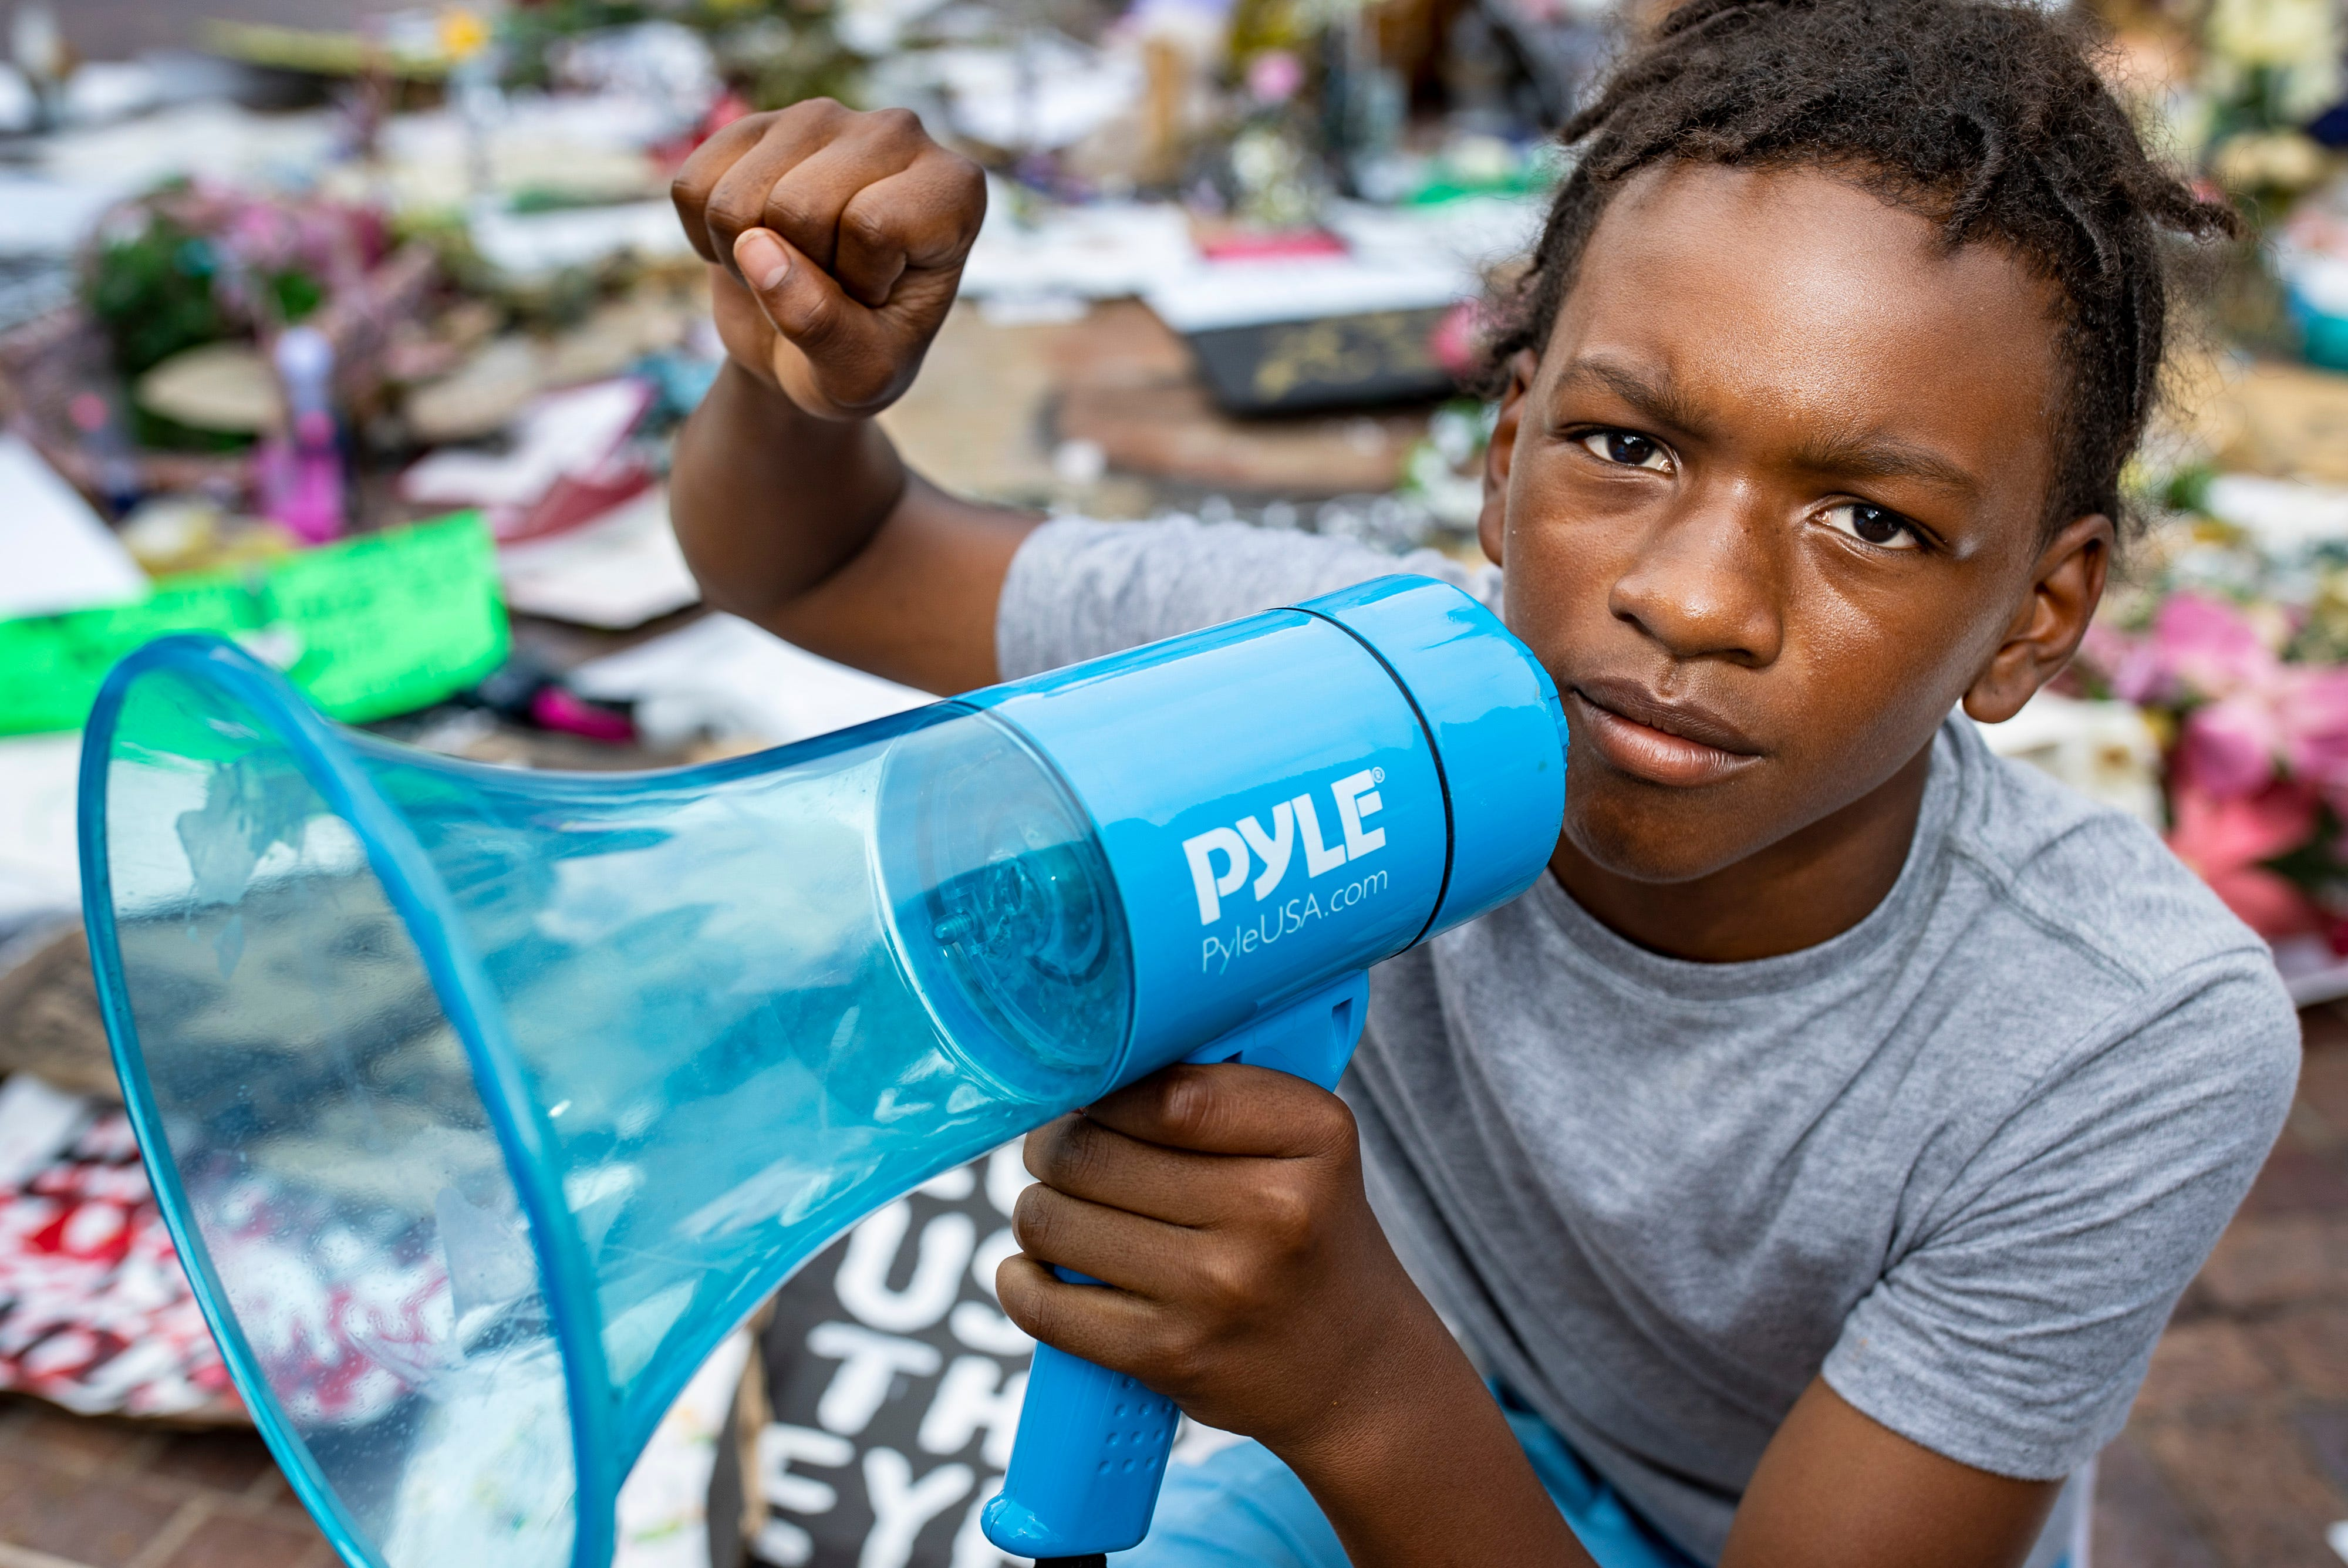 """Keshawn Johnson, 12, kneels while raising a fist at the Breonna Taylor mural in Jefferson Square Park in Louisville, Ky. Johnson has often led chants during protest marches. """"I feel like this is what I need to do for everyone to get justice,"""" Johnson says. """"I have little people that look up to me, and I don't want the generation after me to go through what I am."""""""